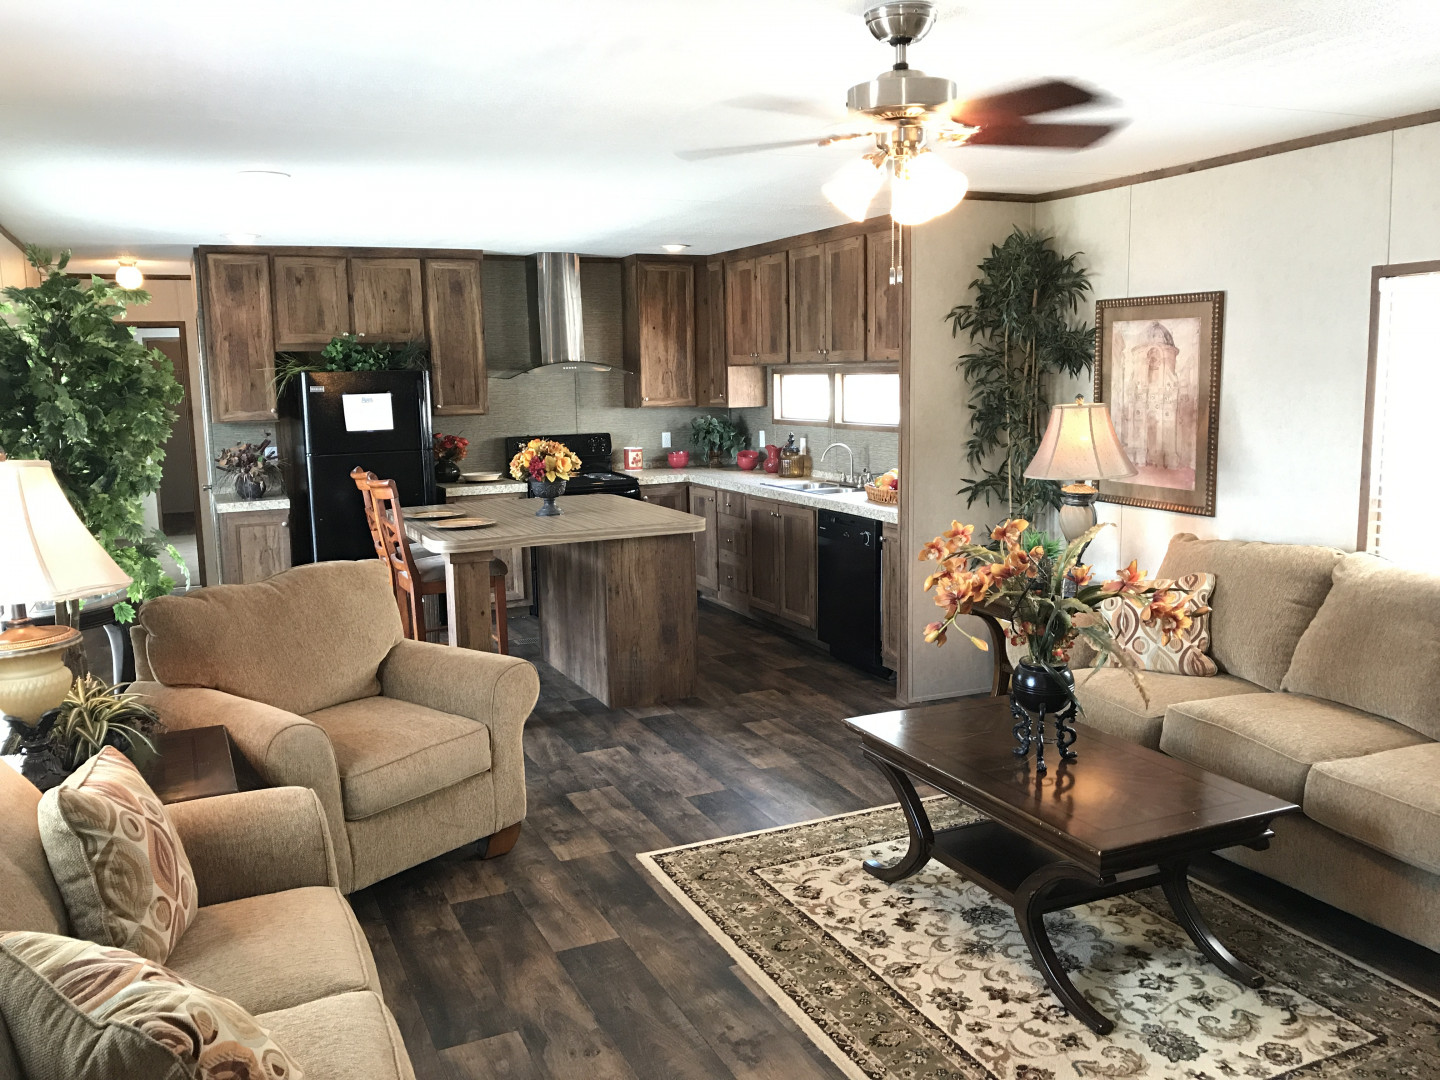 Start Modifying Your Single-Wide Mobile Home Today